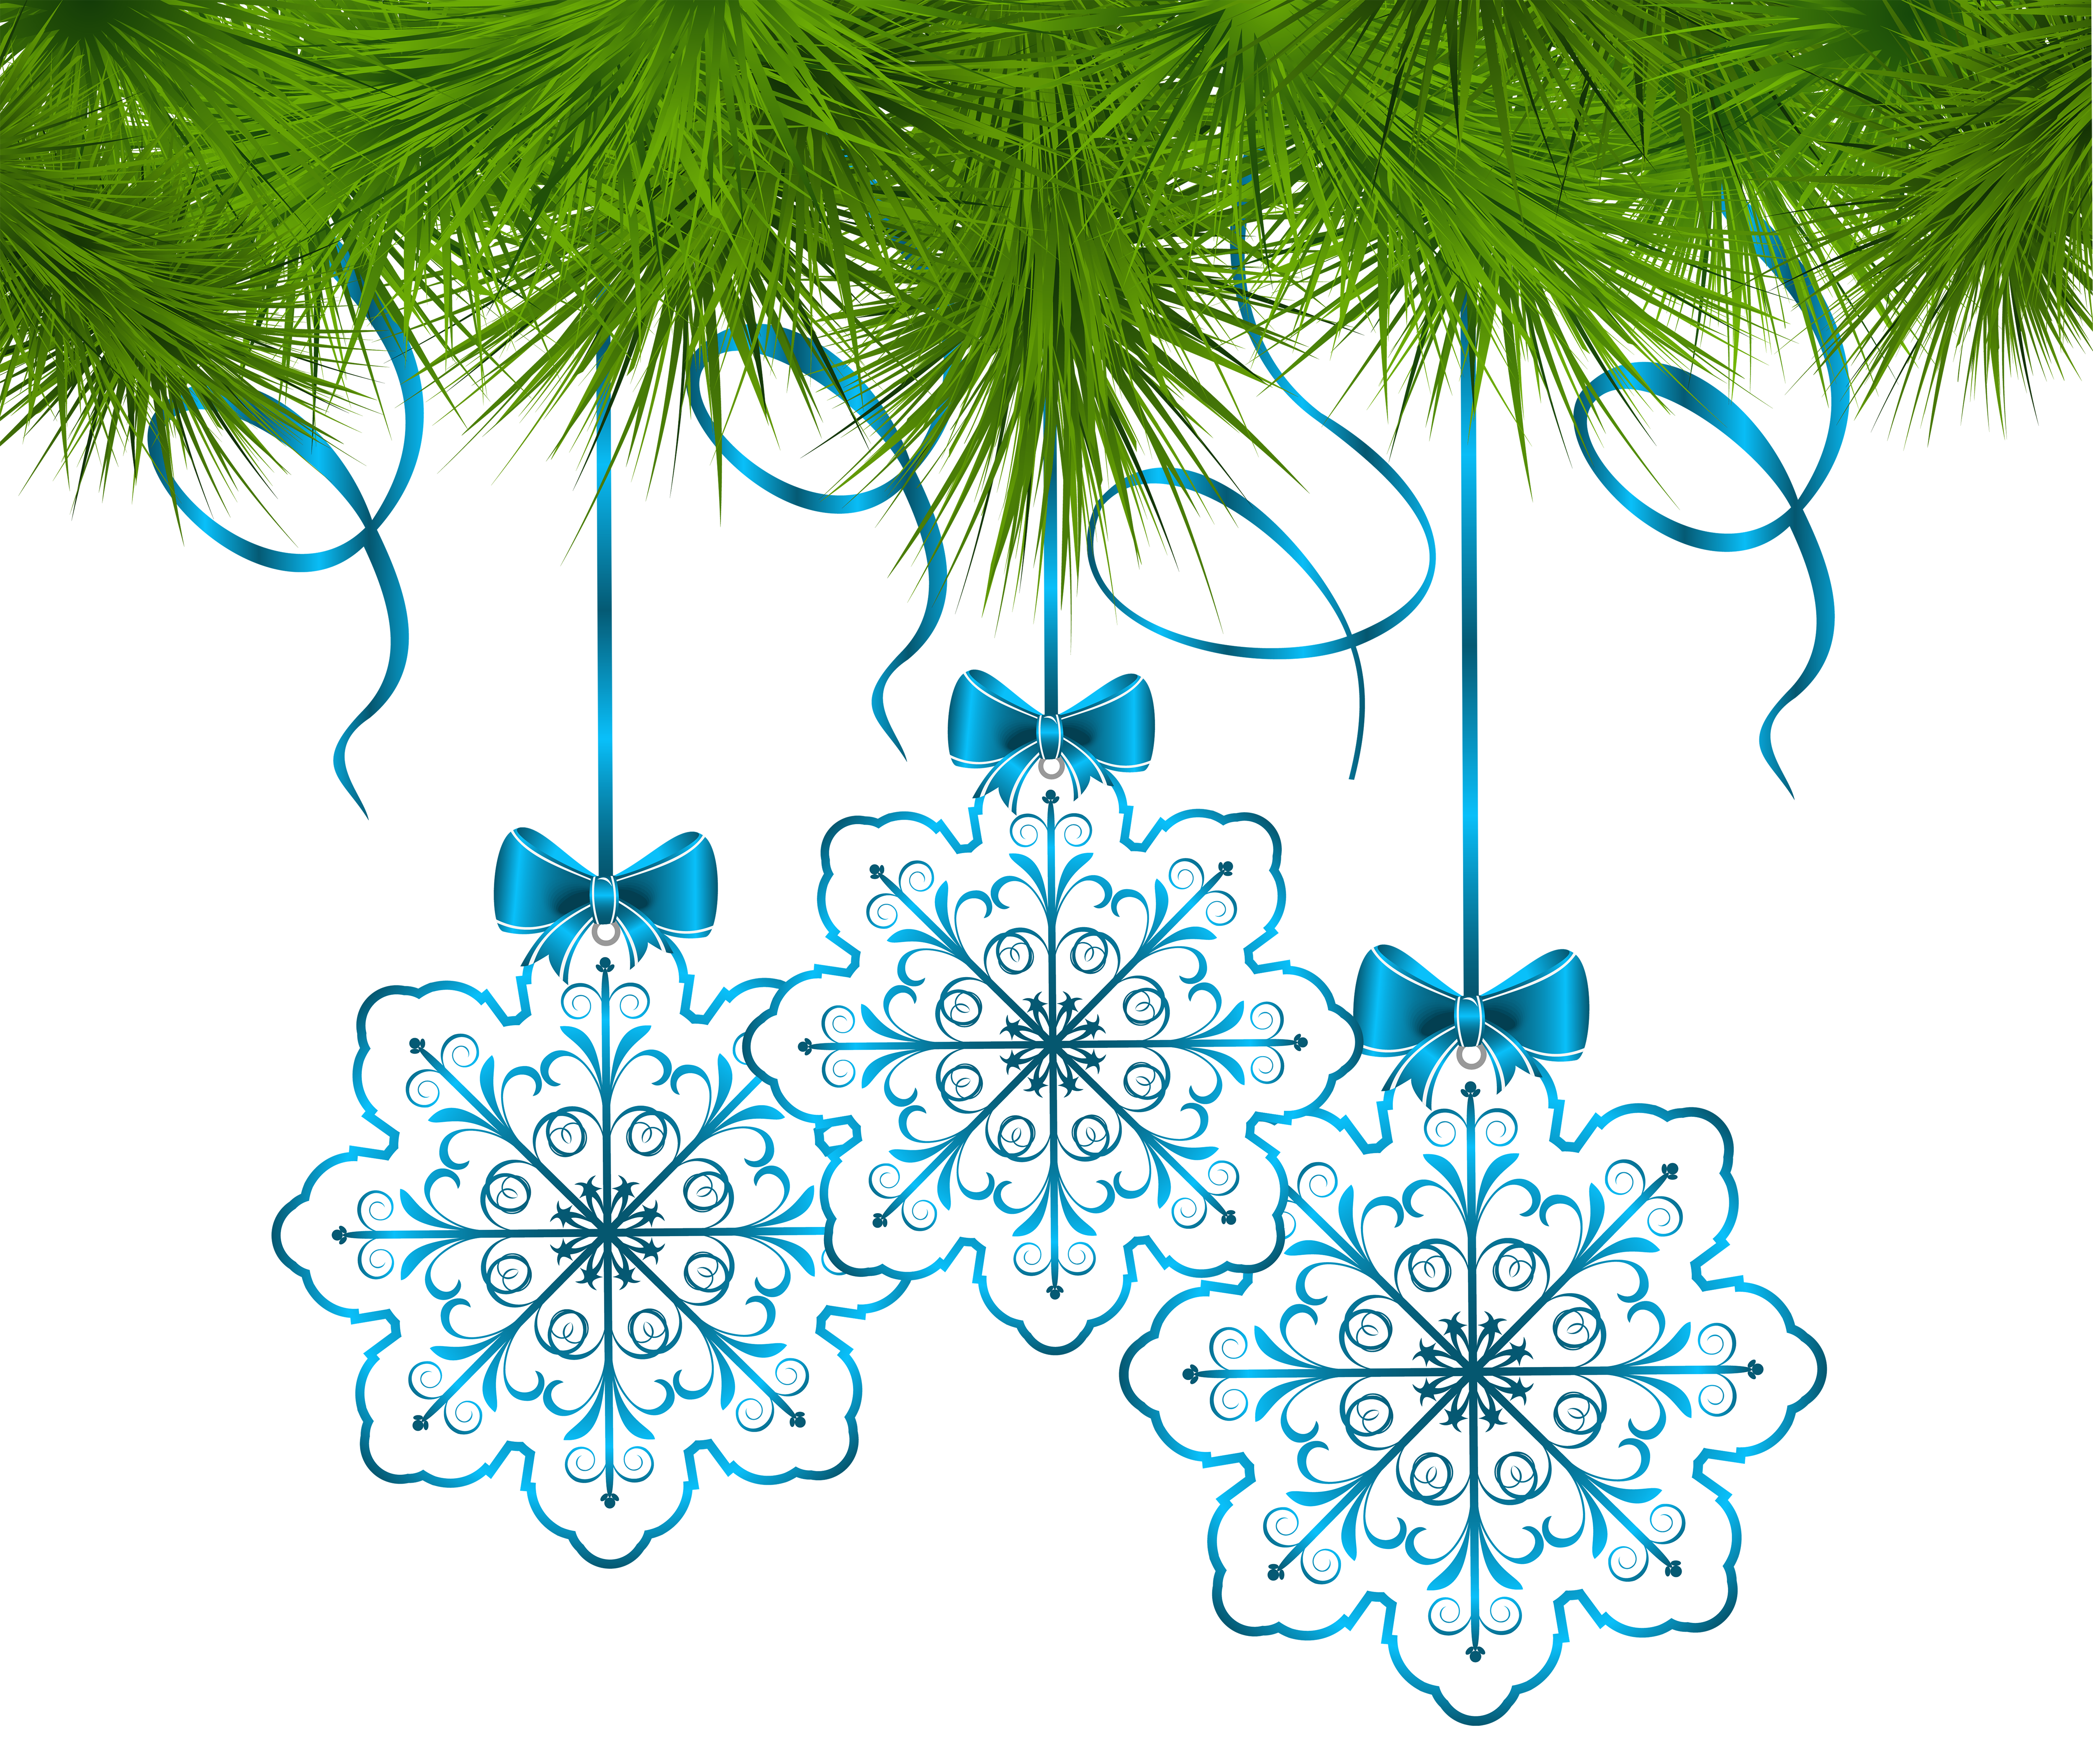 Blue snowflake free banner clipart clipart black and white stock Christmas Pine Decor with Snowflakes Ornaments PNG Clip Art Image ... clipart black and white stock